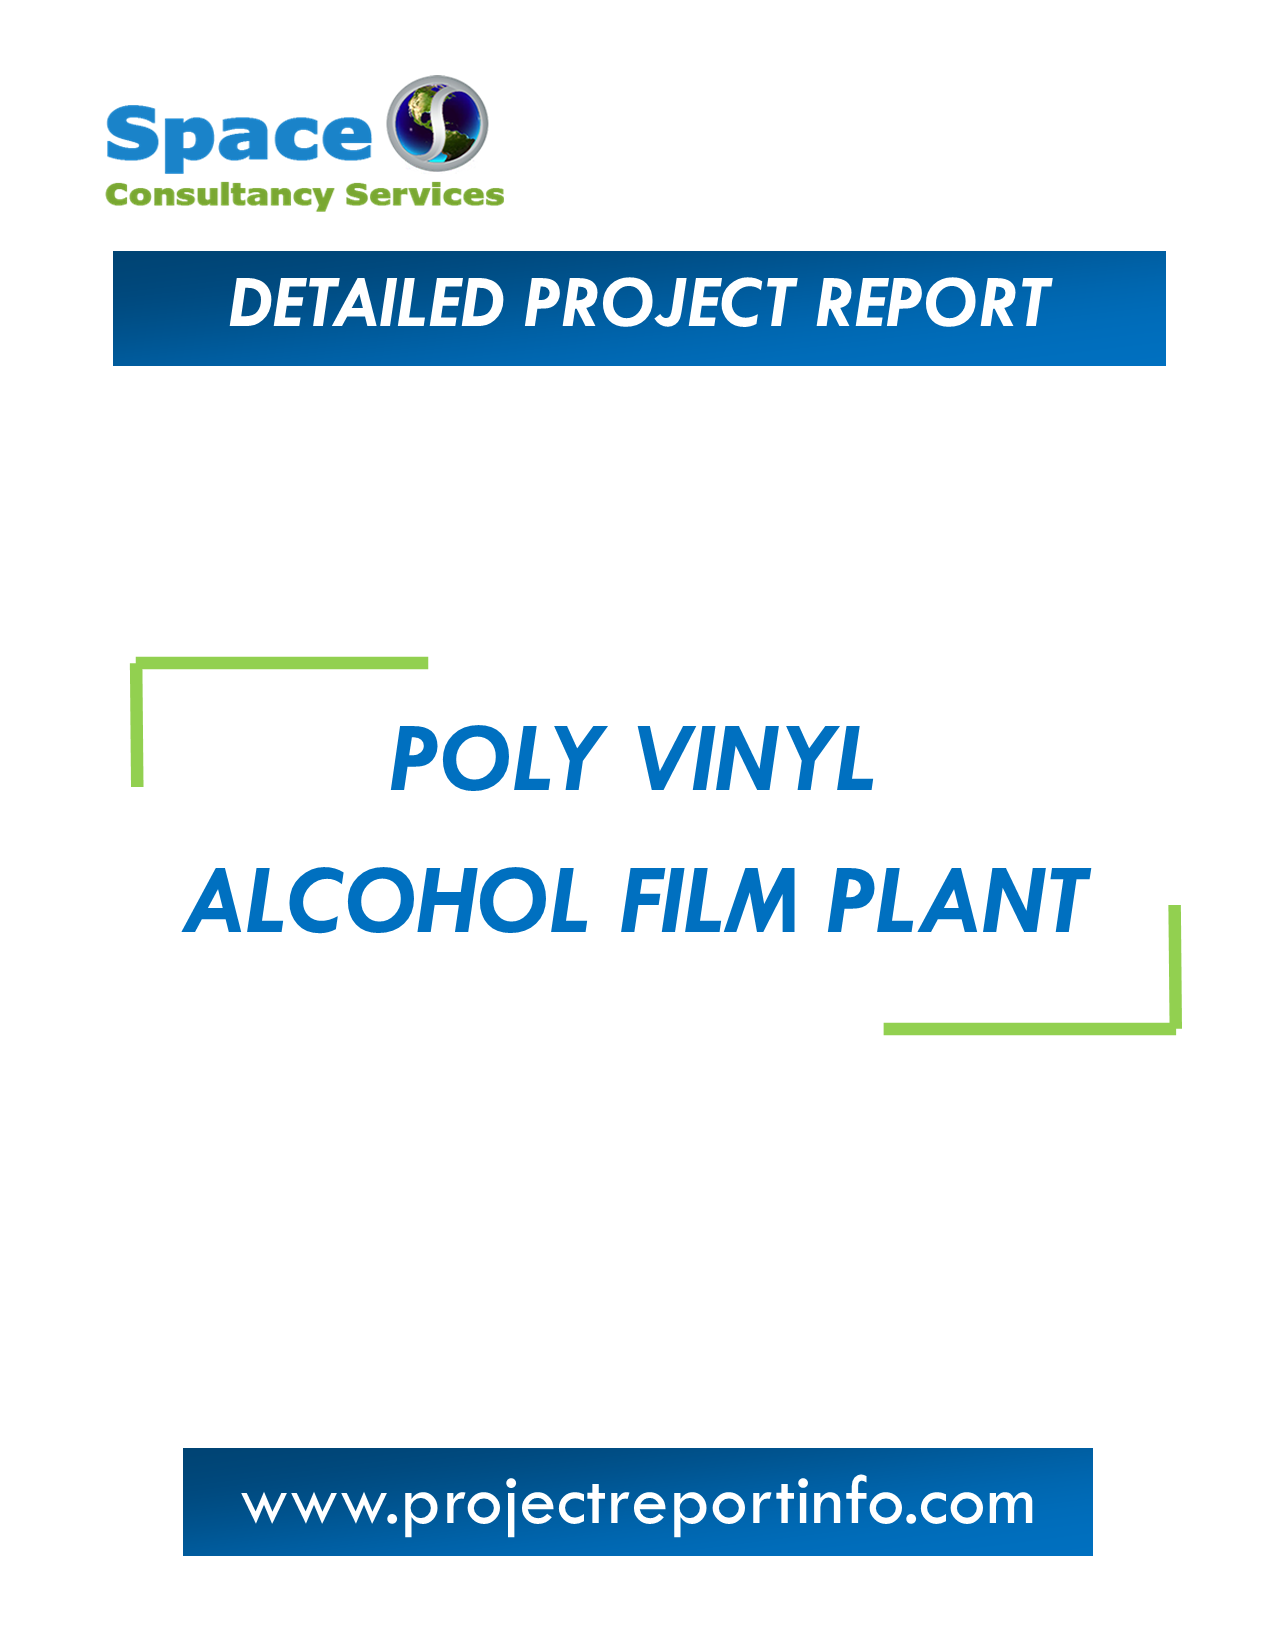 Project Report on Poly Vinyl Alcohol Film Plant